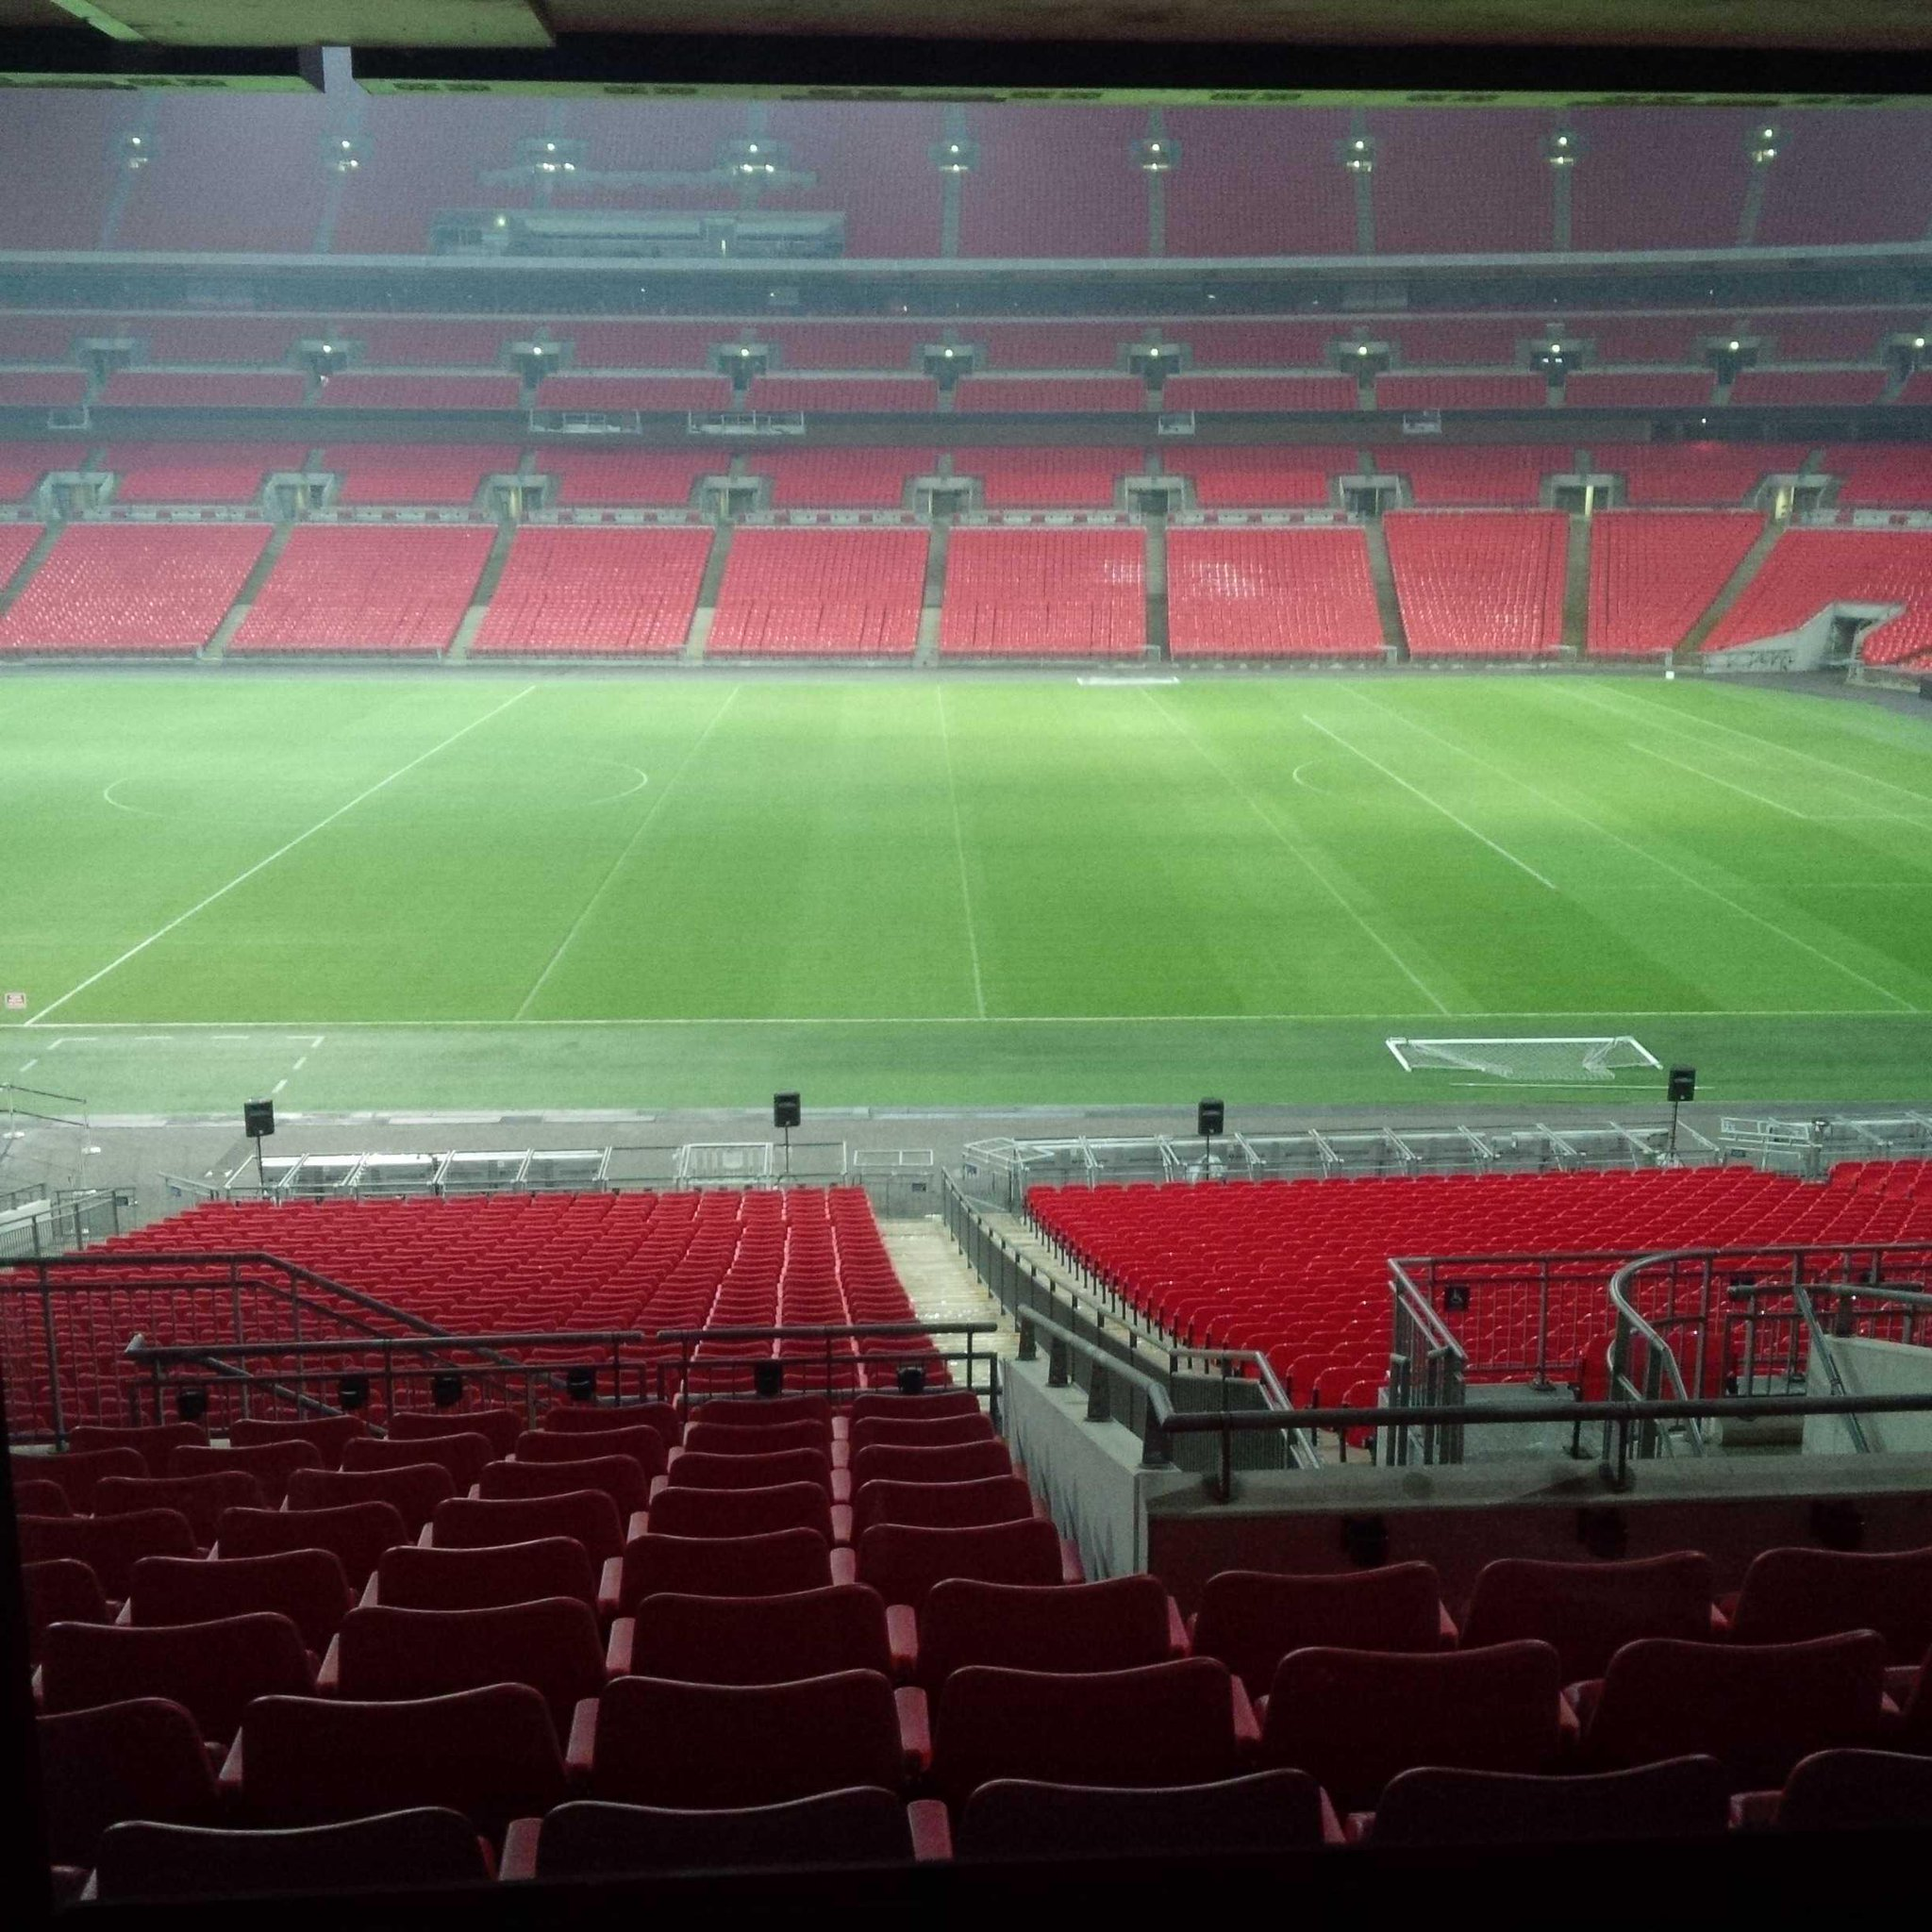 Good morning from Wembley! http://t.co/j35Tcjk5rq